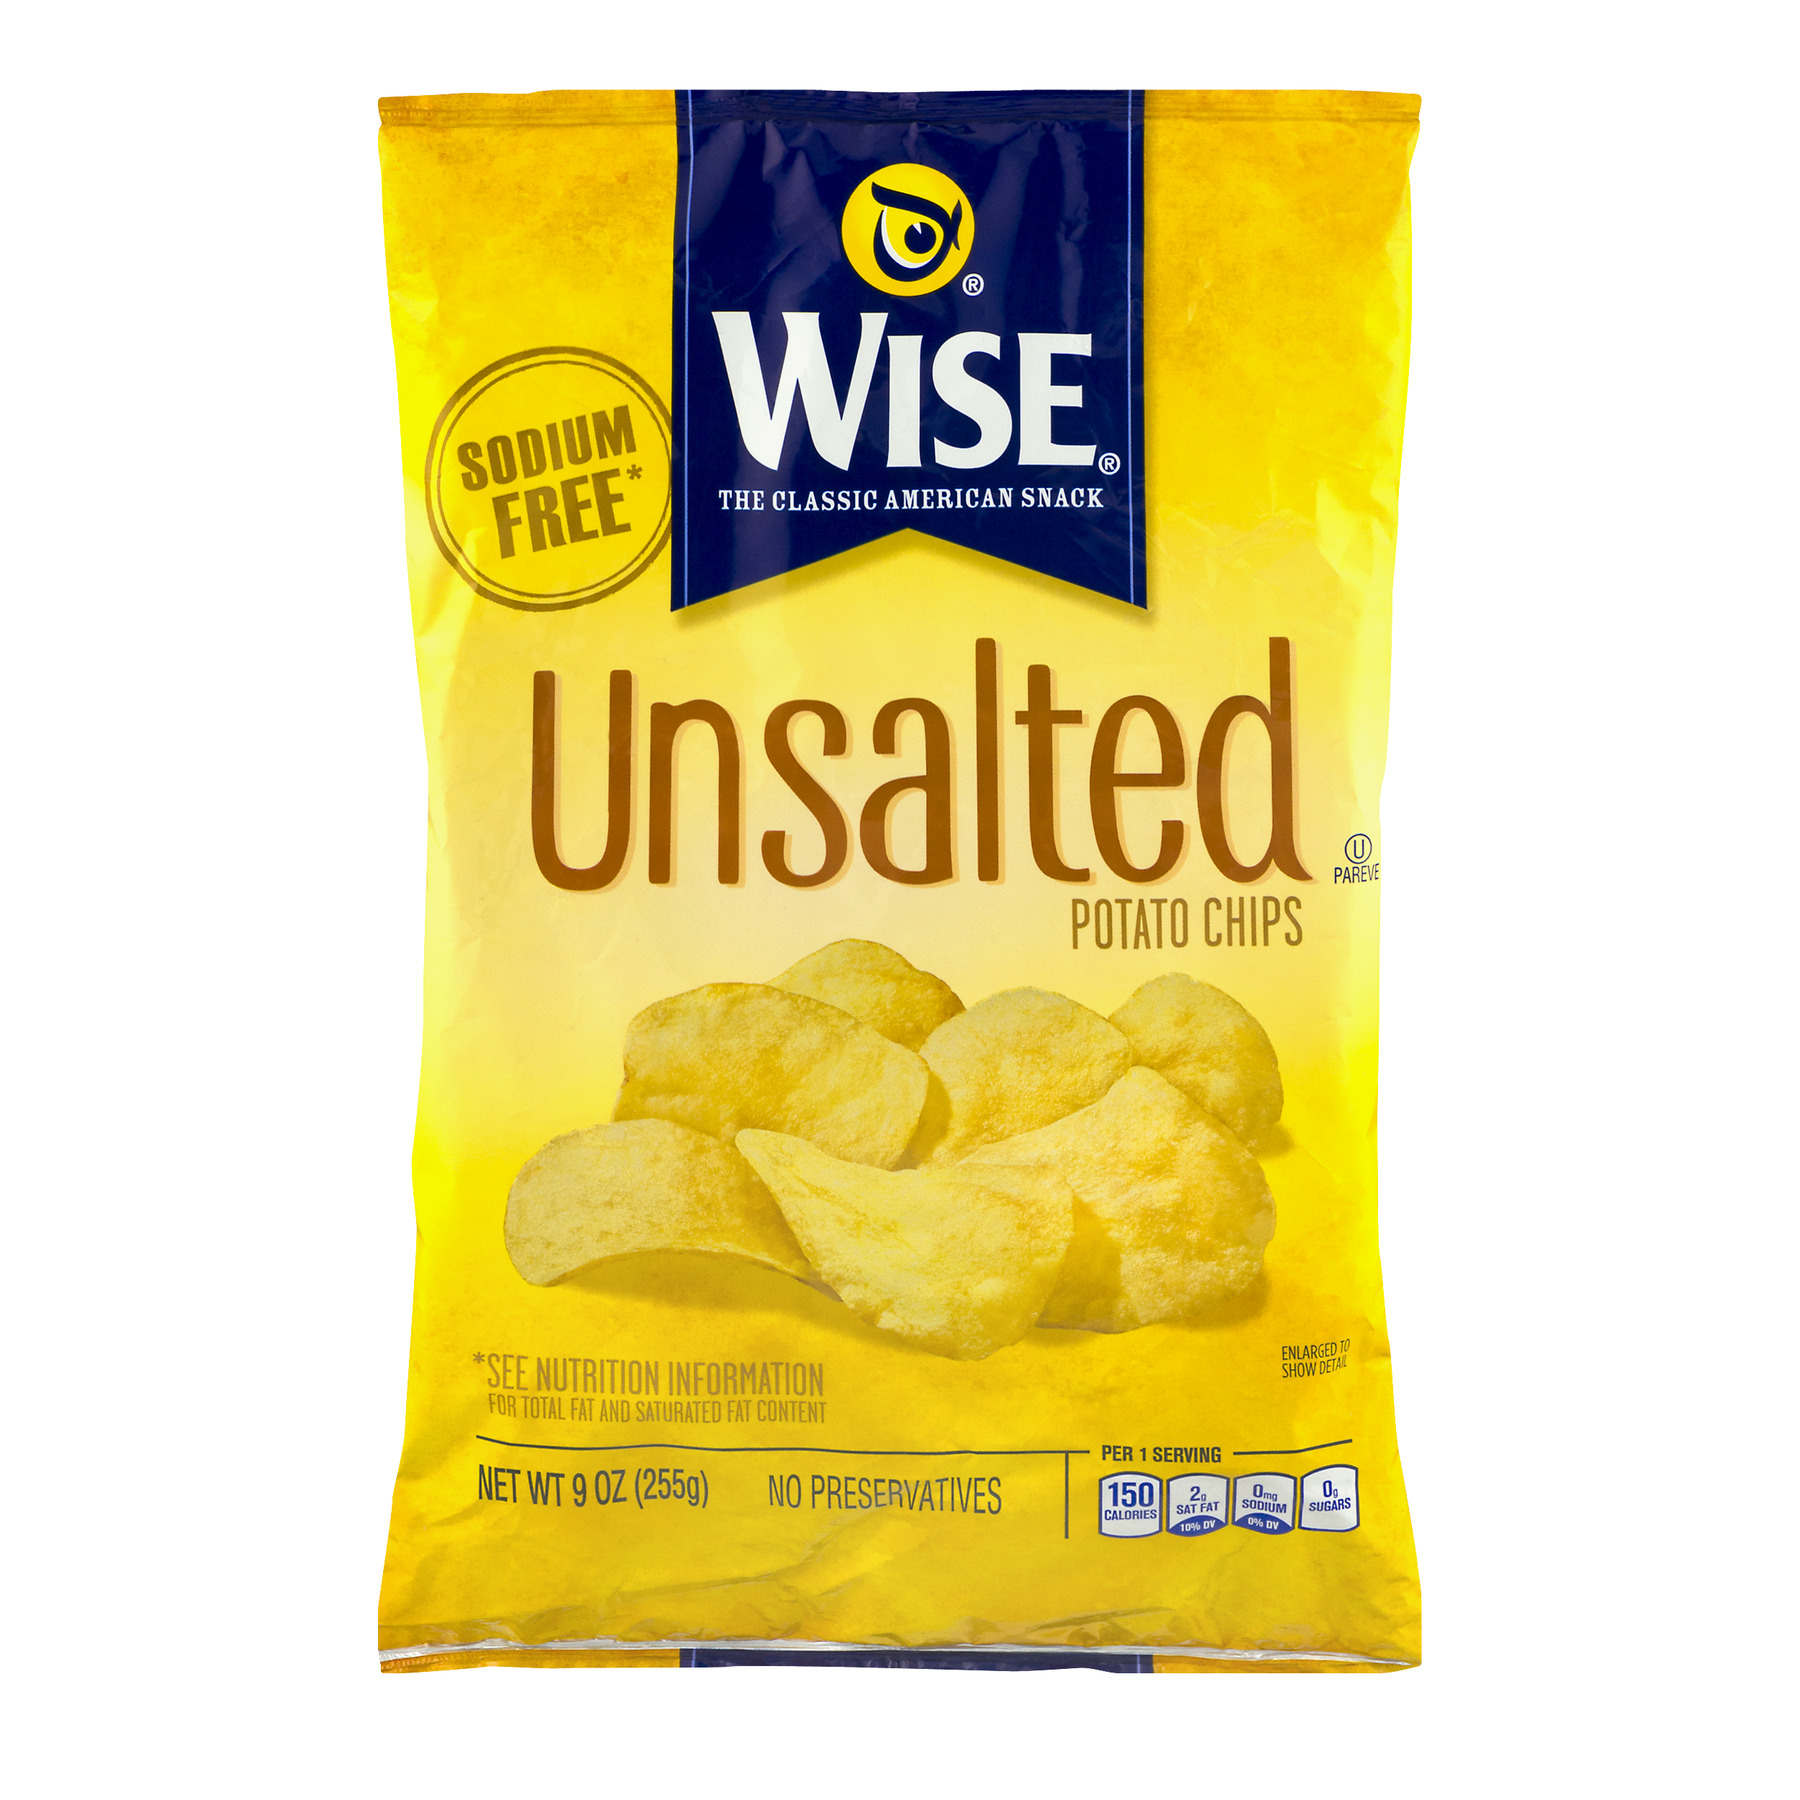 Wise Unsalted Potato Chips, 9.0 OZ